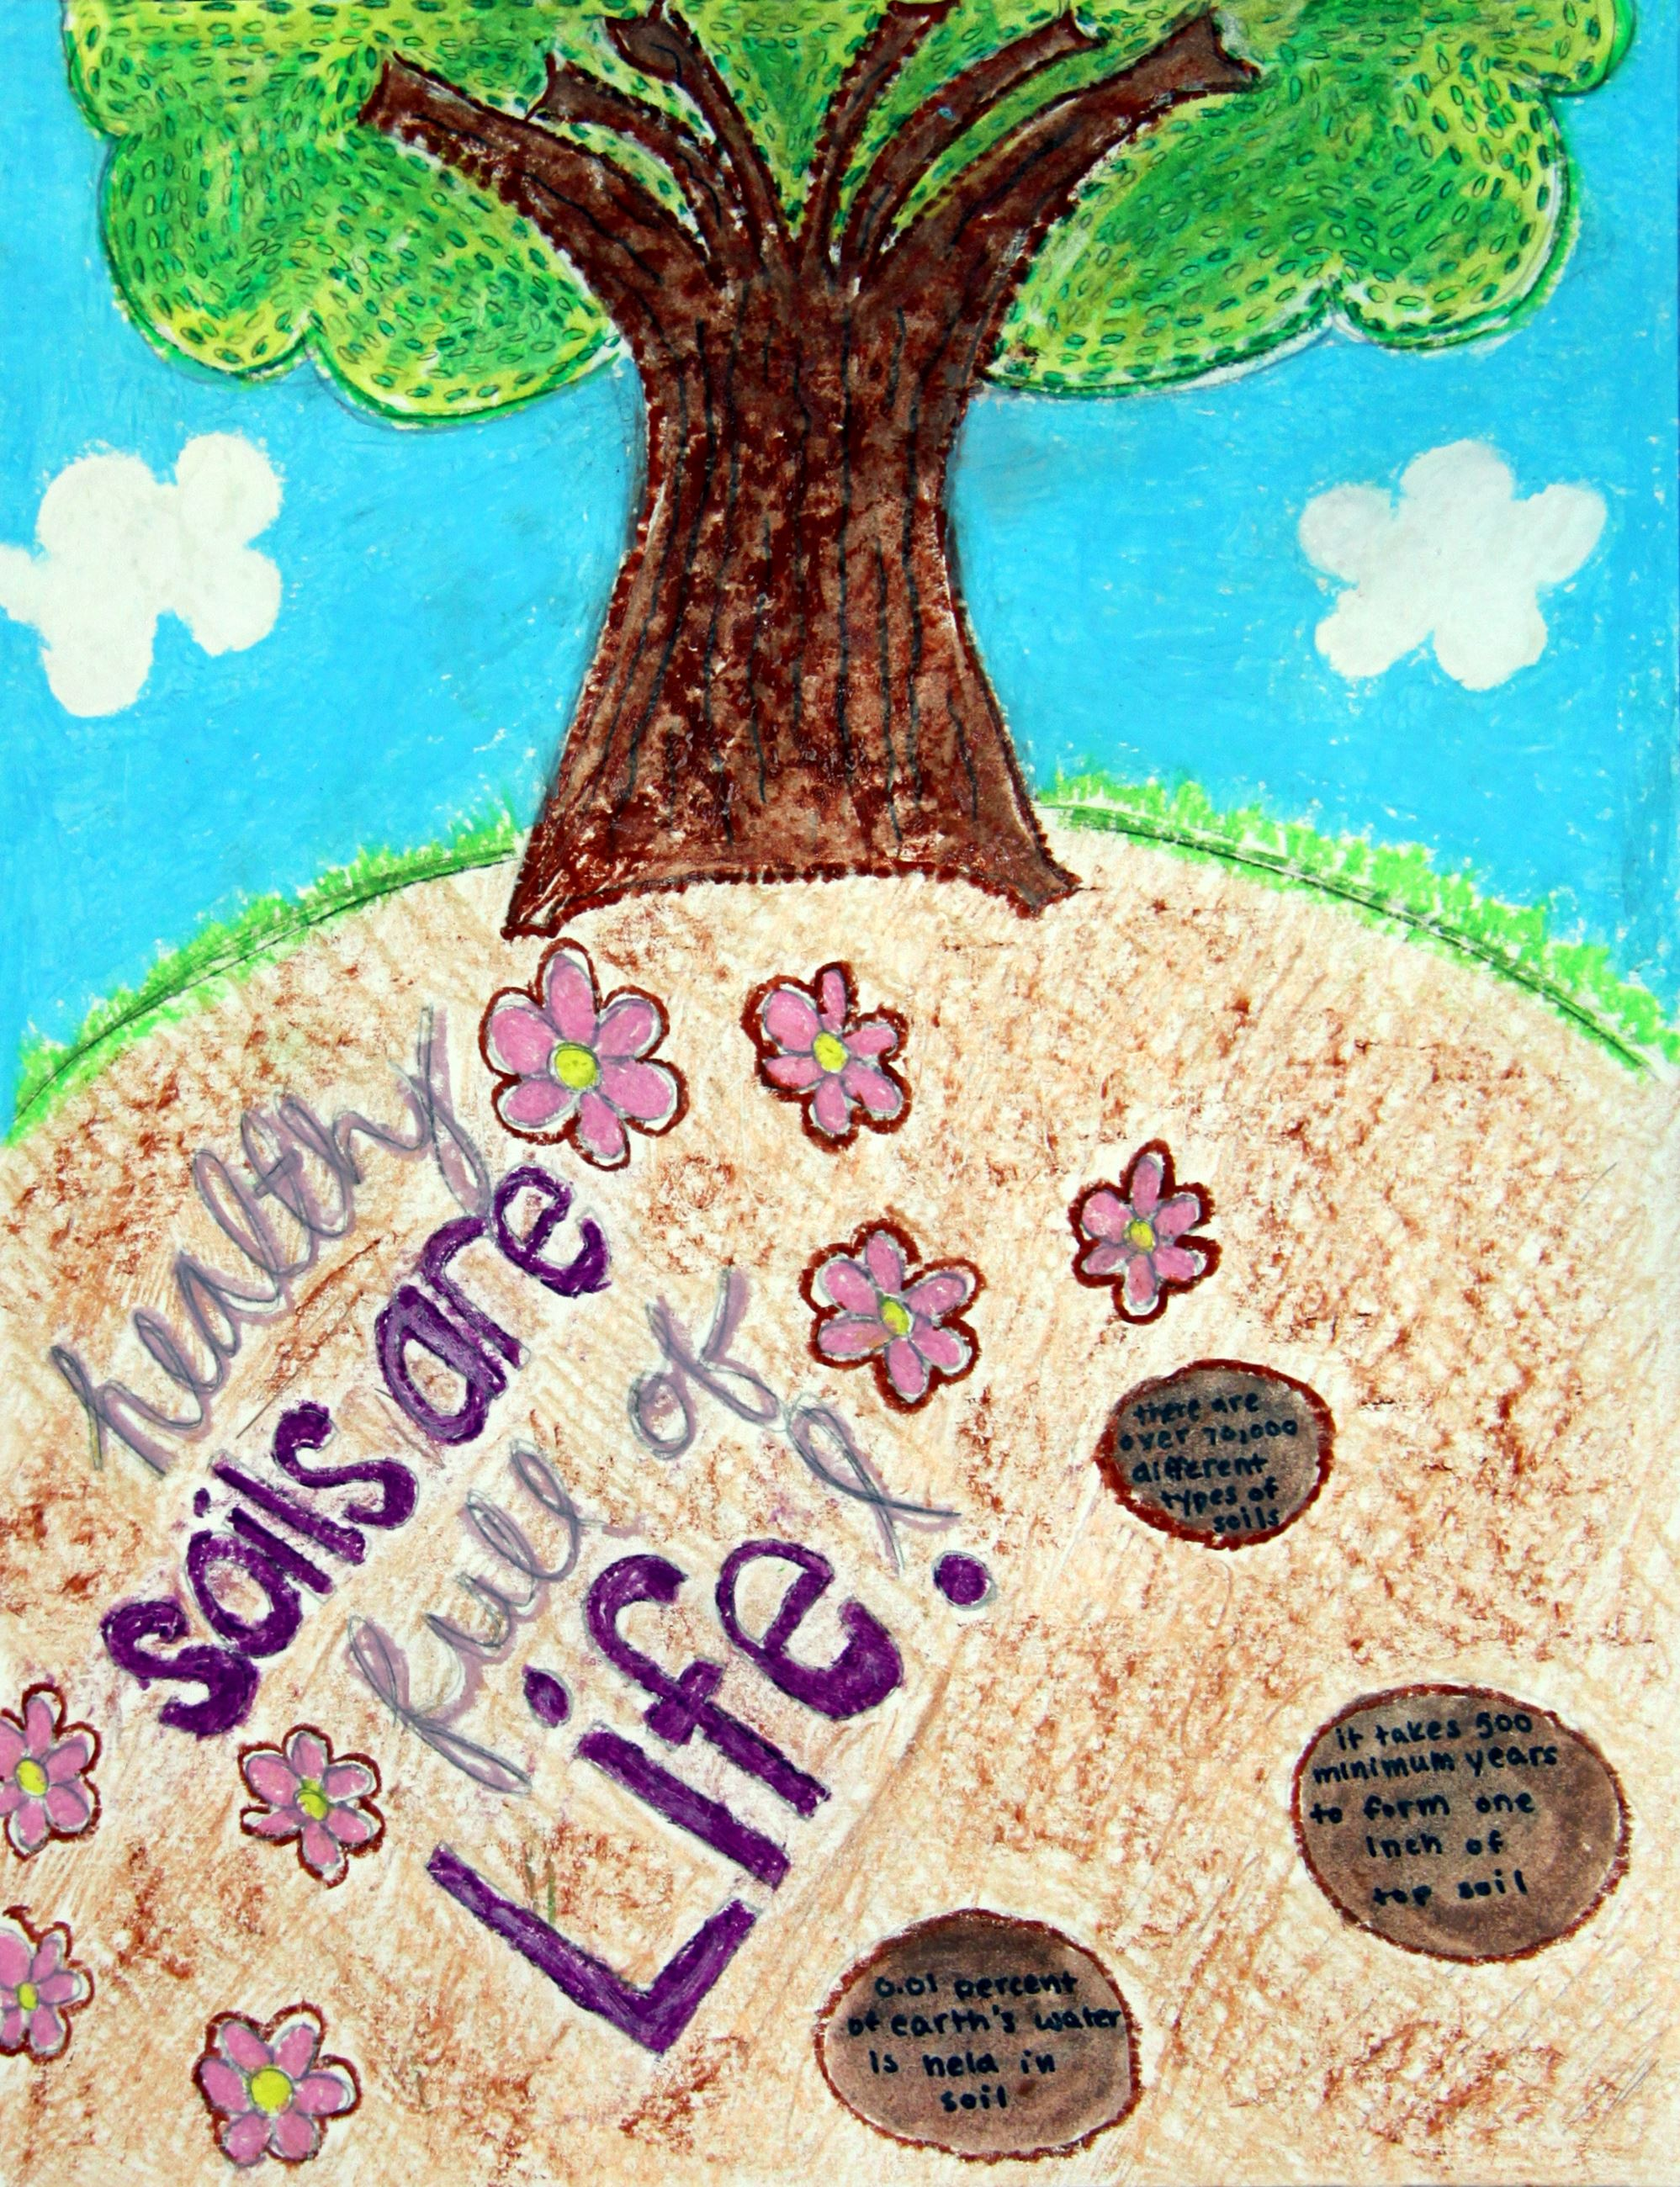 Grade 7 to 9, Third Place Winner: Hailey Ward